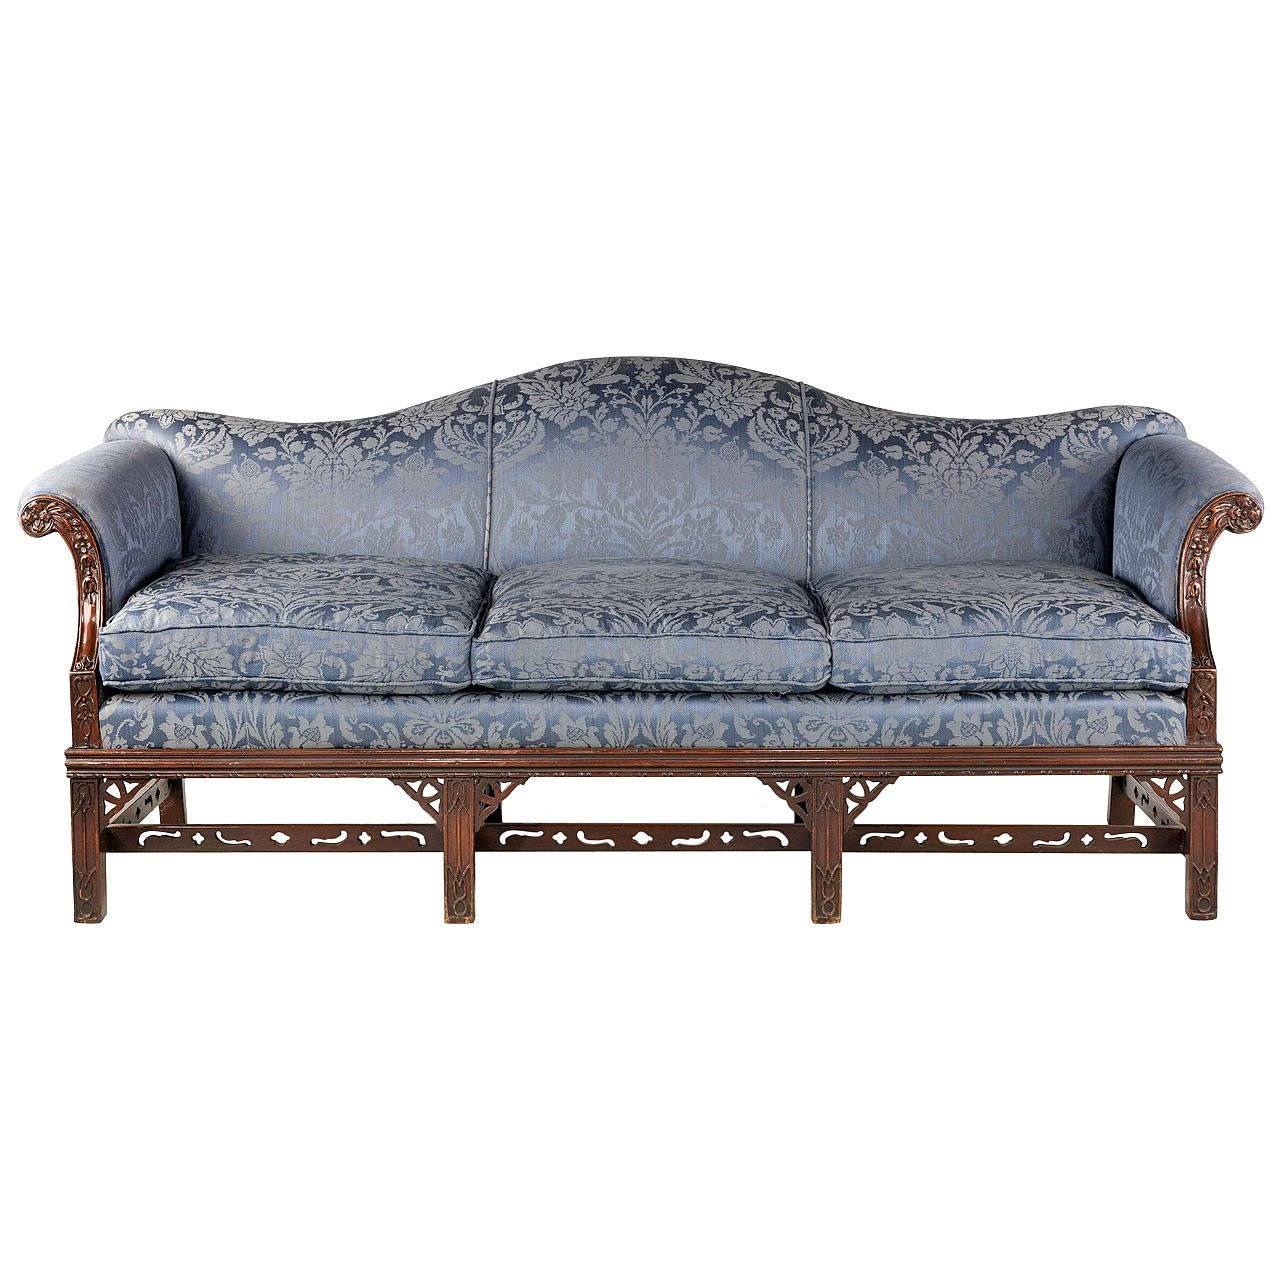 Attirant Chippendale Style Mahogany Framed Camel Back Sofa For Sale